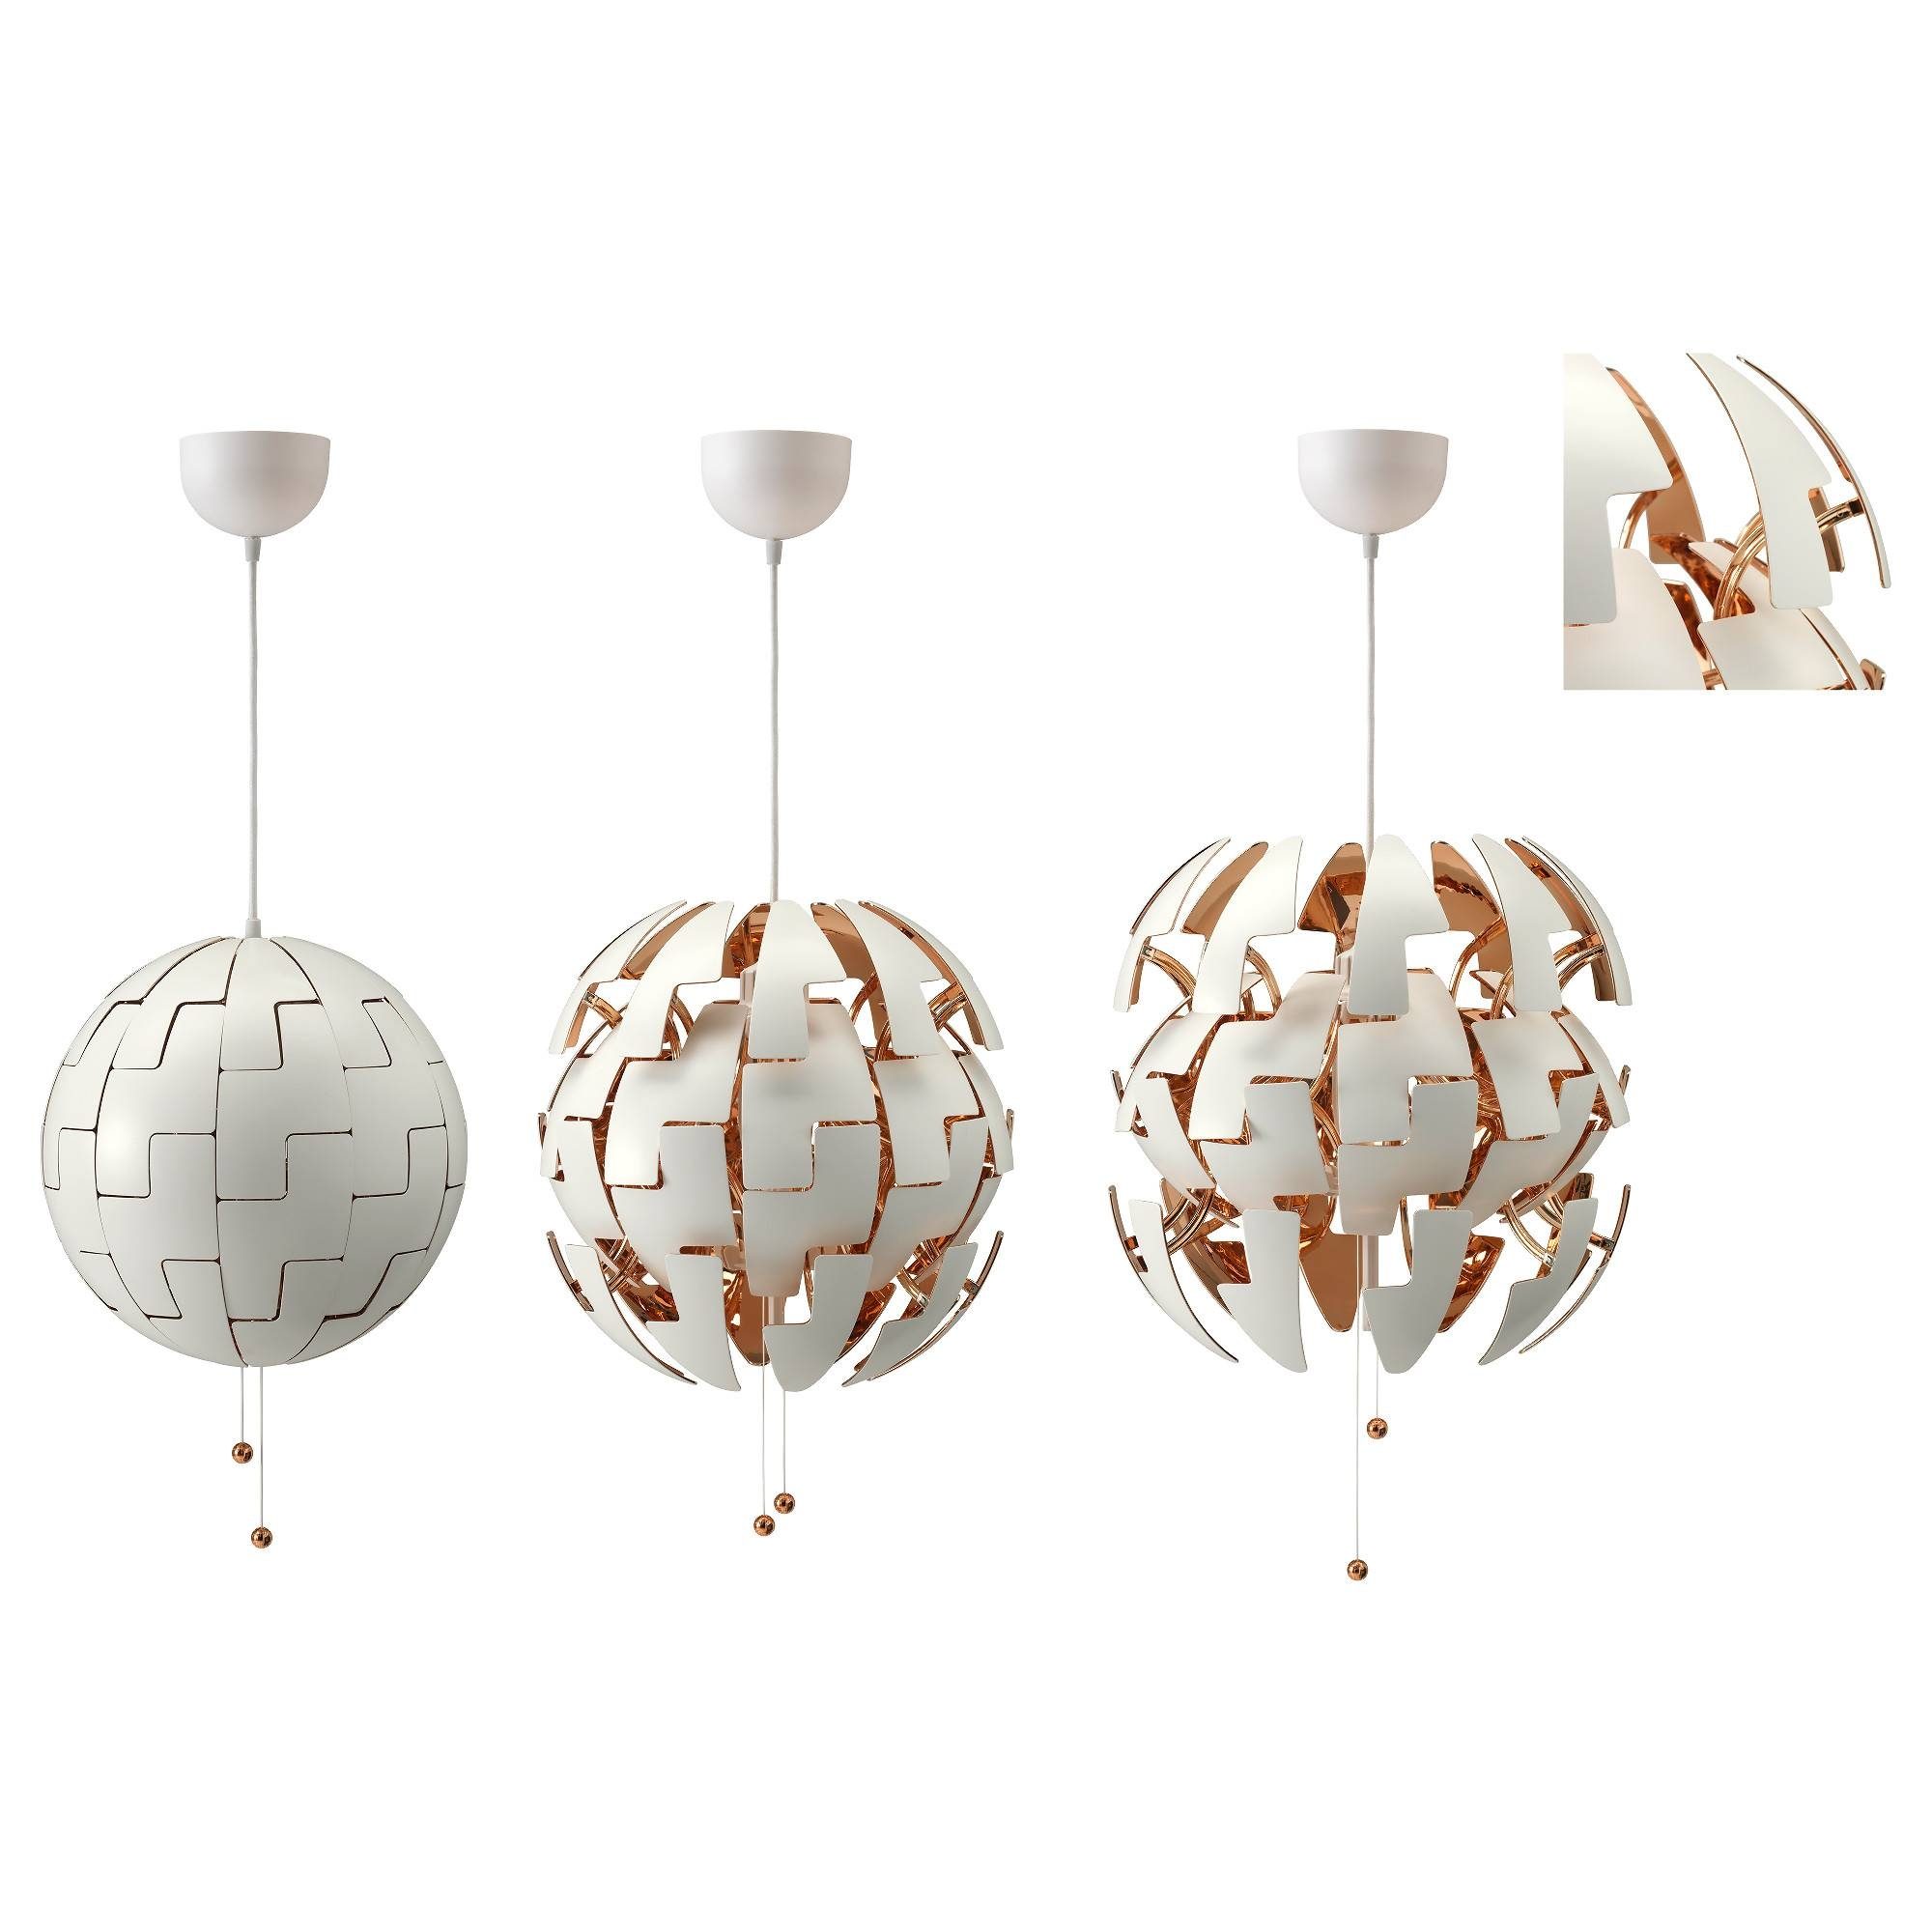 Ikea Ps 2014 Pendant Lamp White/copper Colour – Ikea Throughout Ikea Globe Pendant Lights (View 8 of 15)